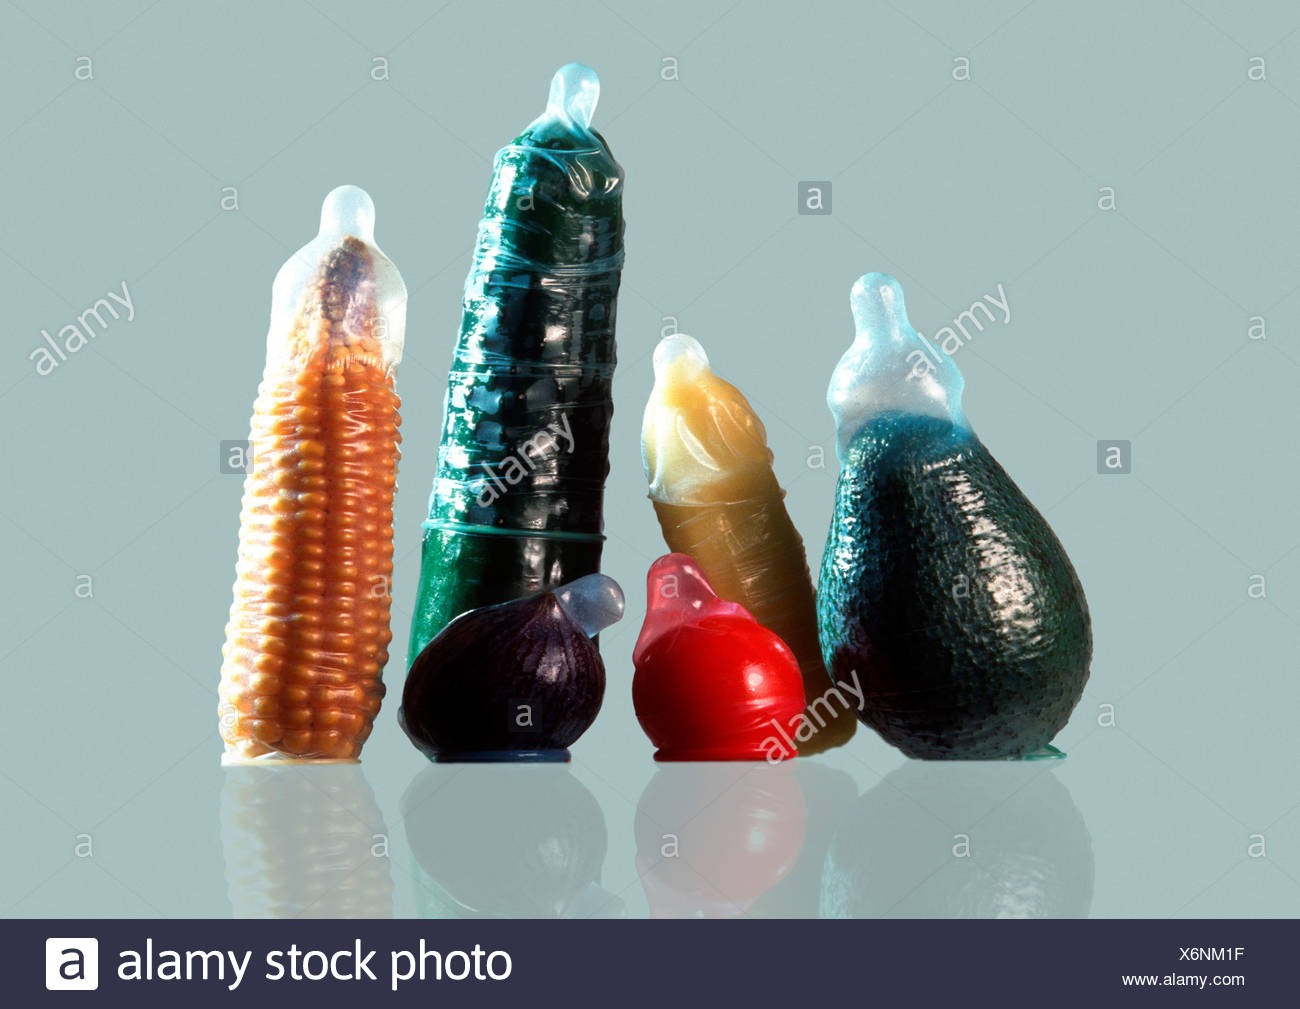 pest management, vegetables encased with condoms. - Stock Image